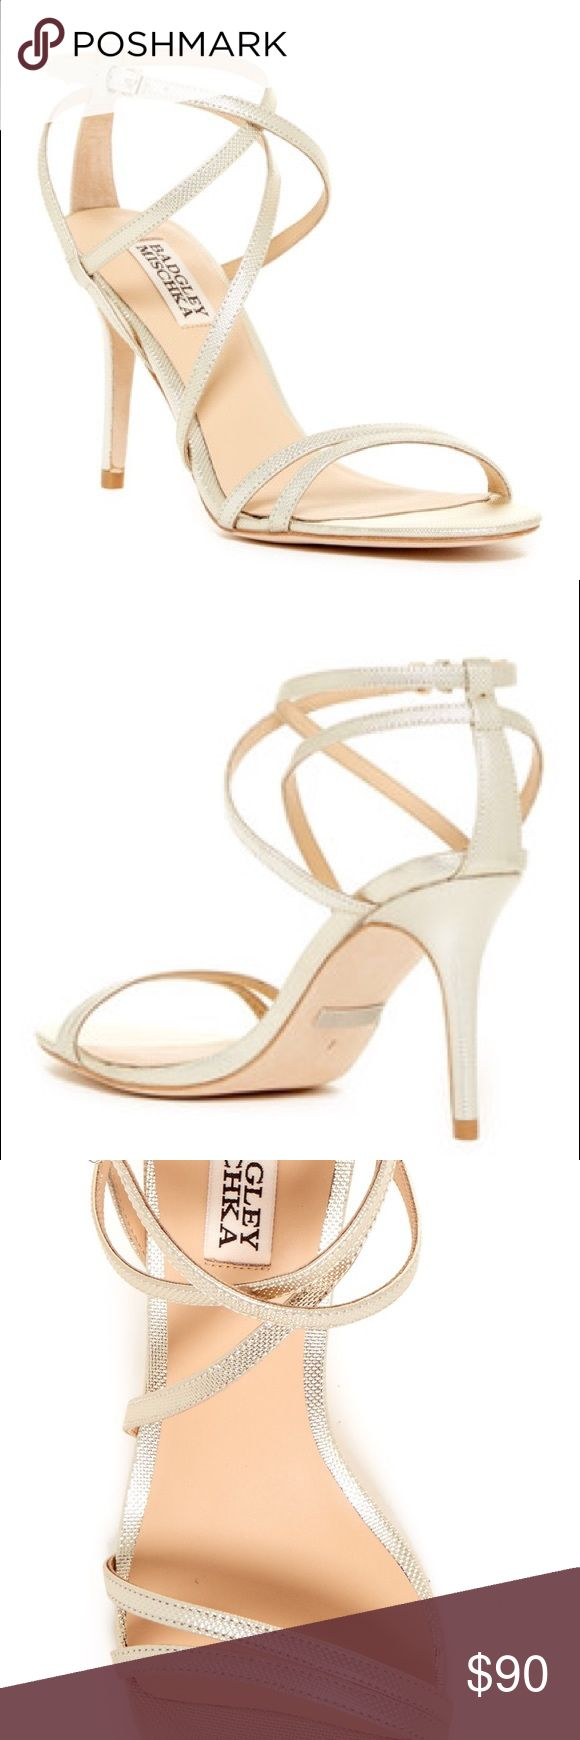 NWT cream/light beige strappy heels NWT Badgley Mishka cream/light beige strappy heels.  So cute and comfy. I bought them for my wedding rehearsal and never ended up wearing them. Brand NEW with box!! Badgley Mischka Shoes Heels